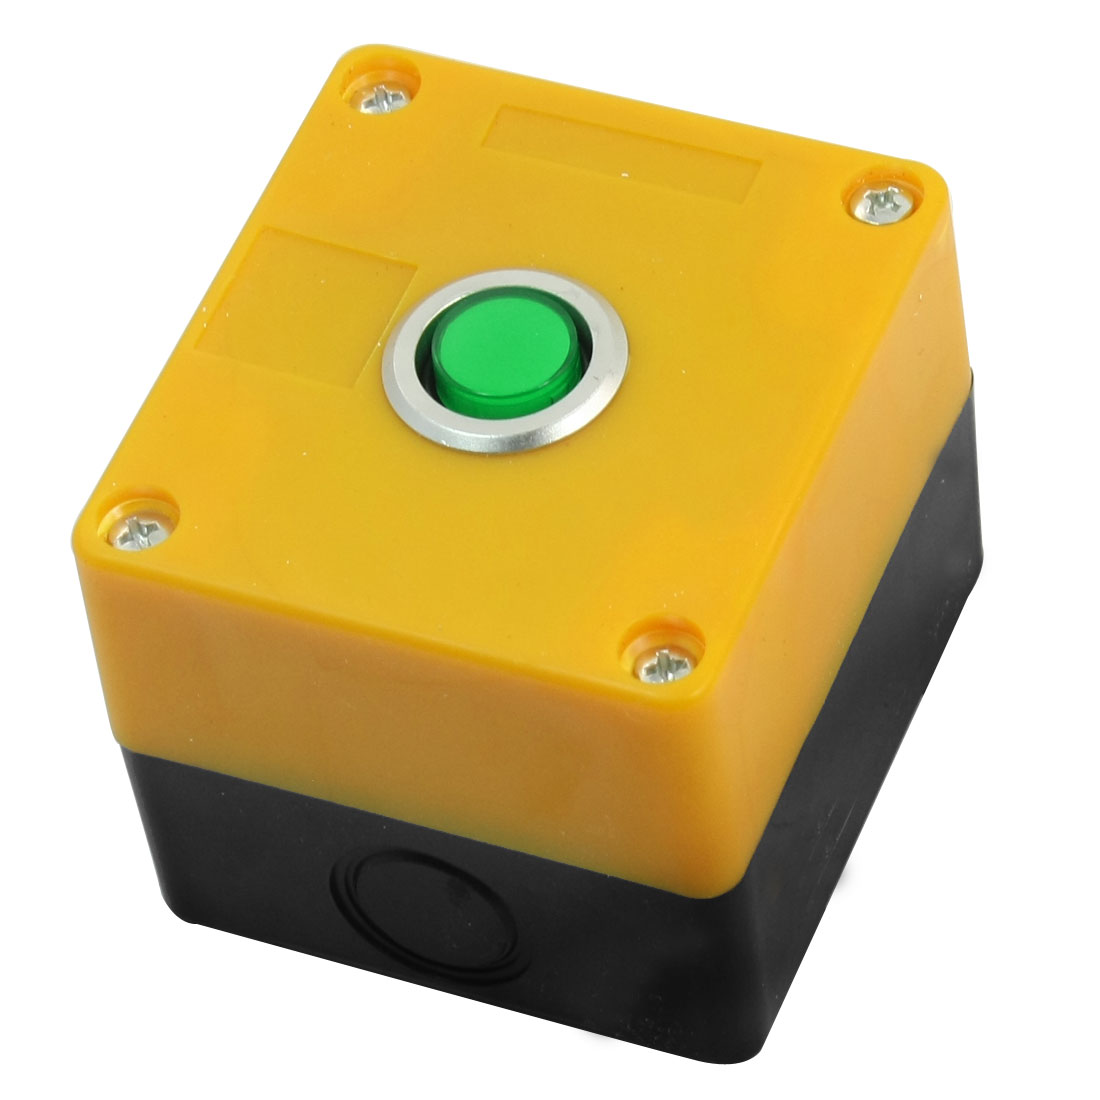 AC220V 5A SPDT 5-Pin 1NO 1NC Latching Green Pilot Lamp Rectangle Yellow Plastic Case Push Button Control Station